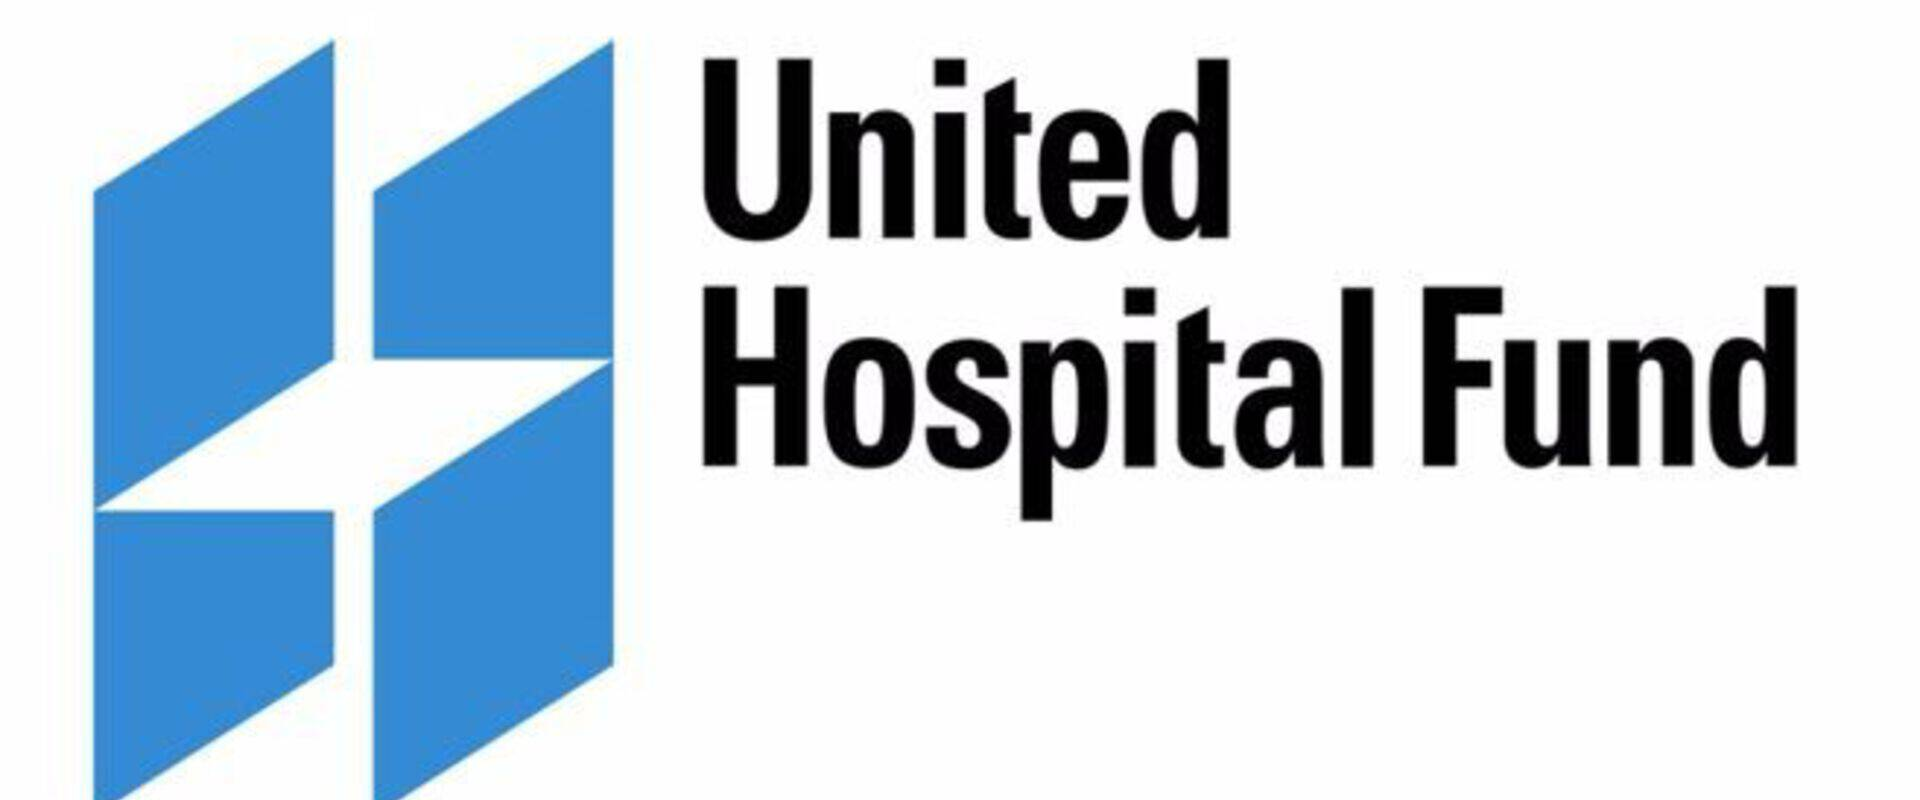 Michelle Rider Receives United Hospital Fund's 2016 Distinguished Trustee Award